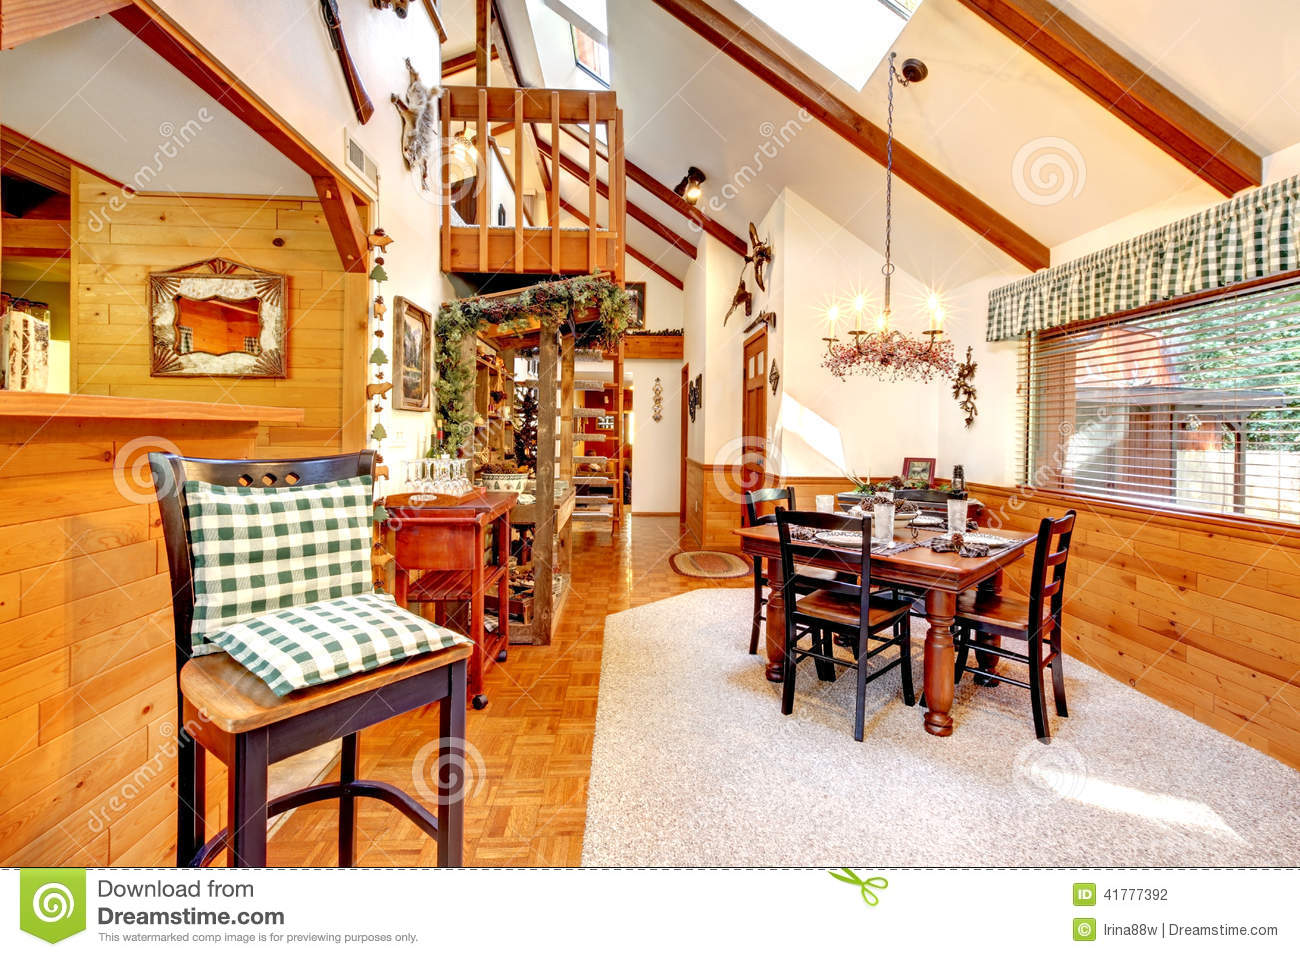 Furniture Bright High Vaulted Ceiling Kitchen Room With: Log Cabin House Interior Stock Photo